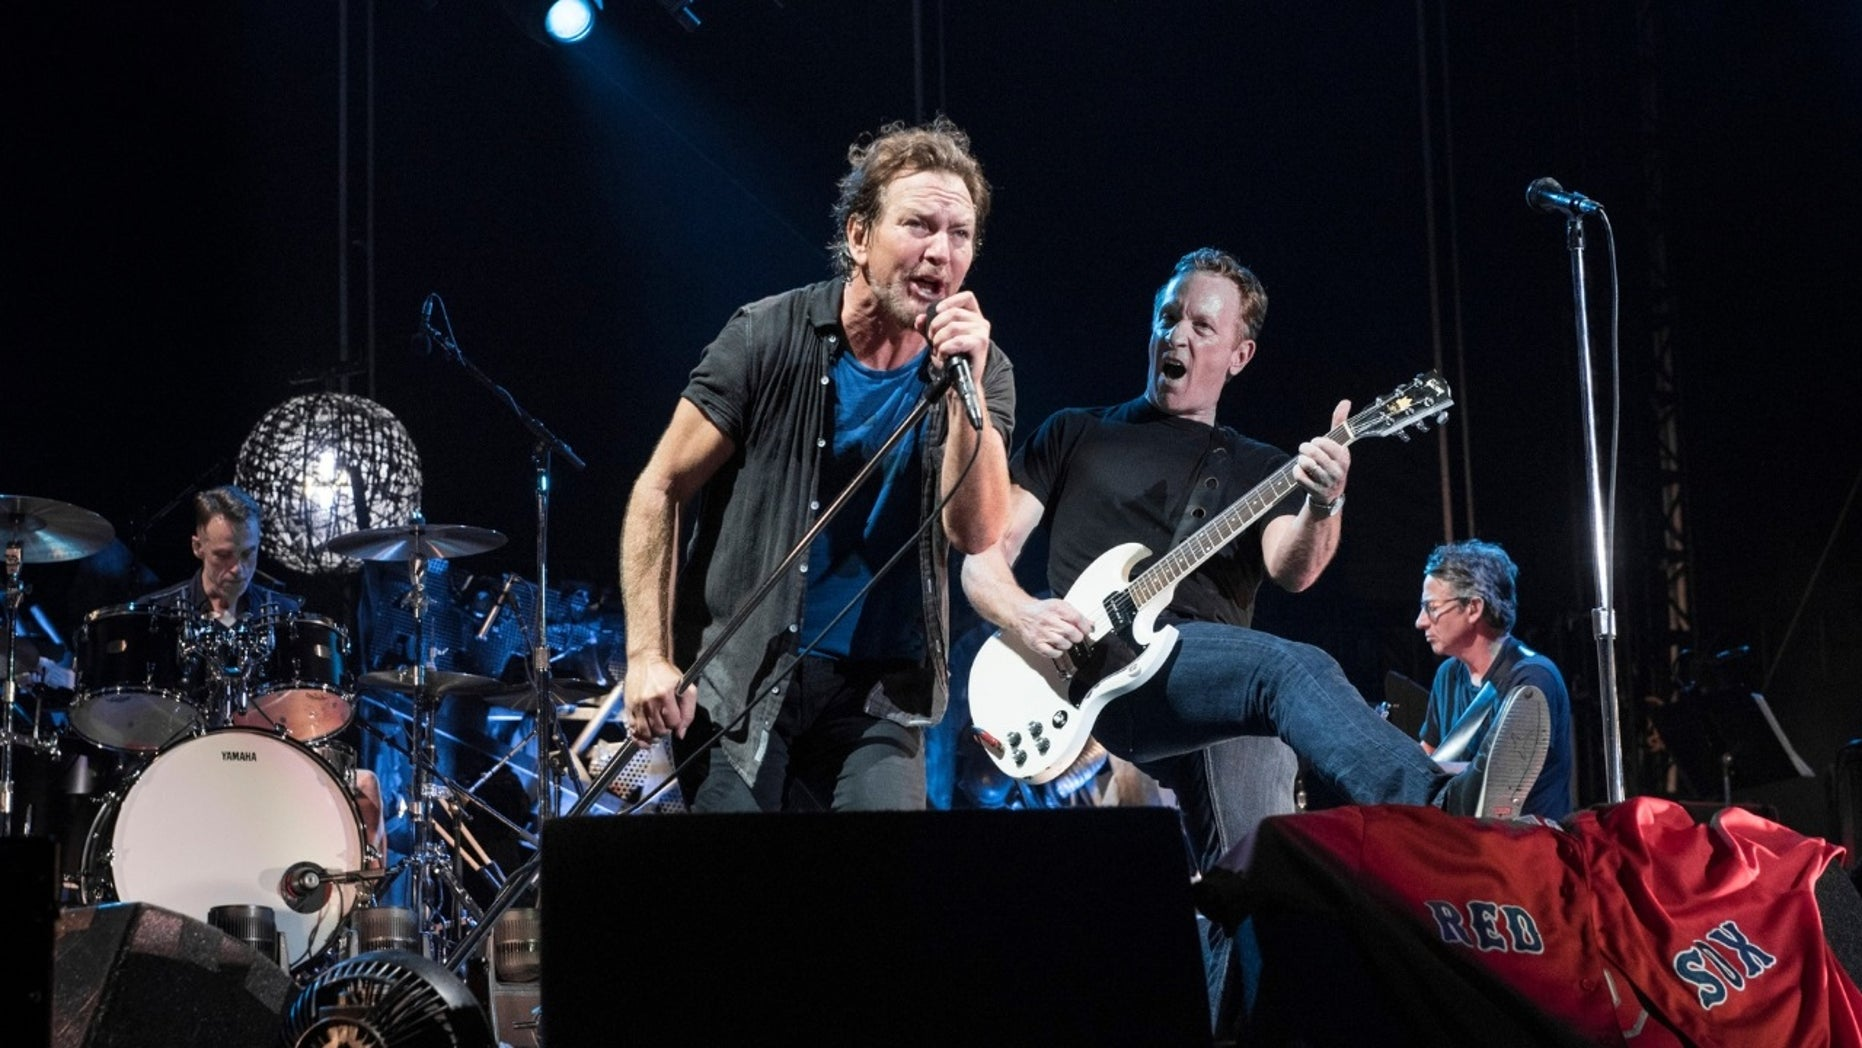 """Pearl Jam's hit song """"Jeremy"""" was inspired by a Texas teenager who shot himself in front of his classmates in 1991."""